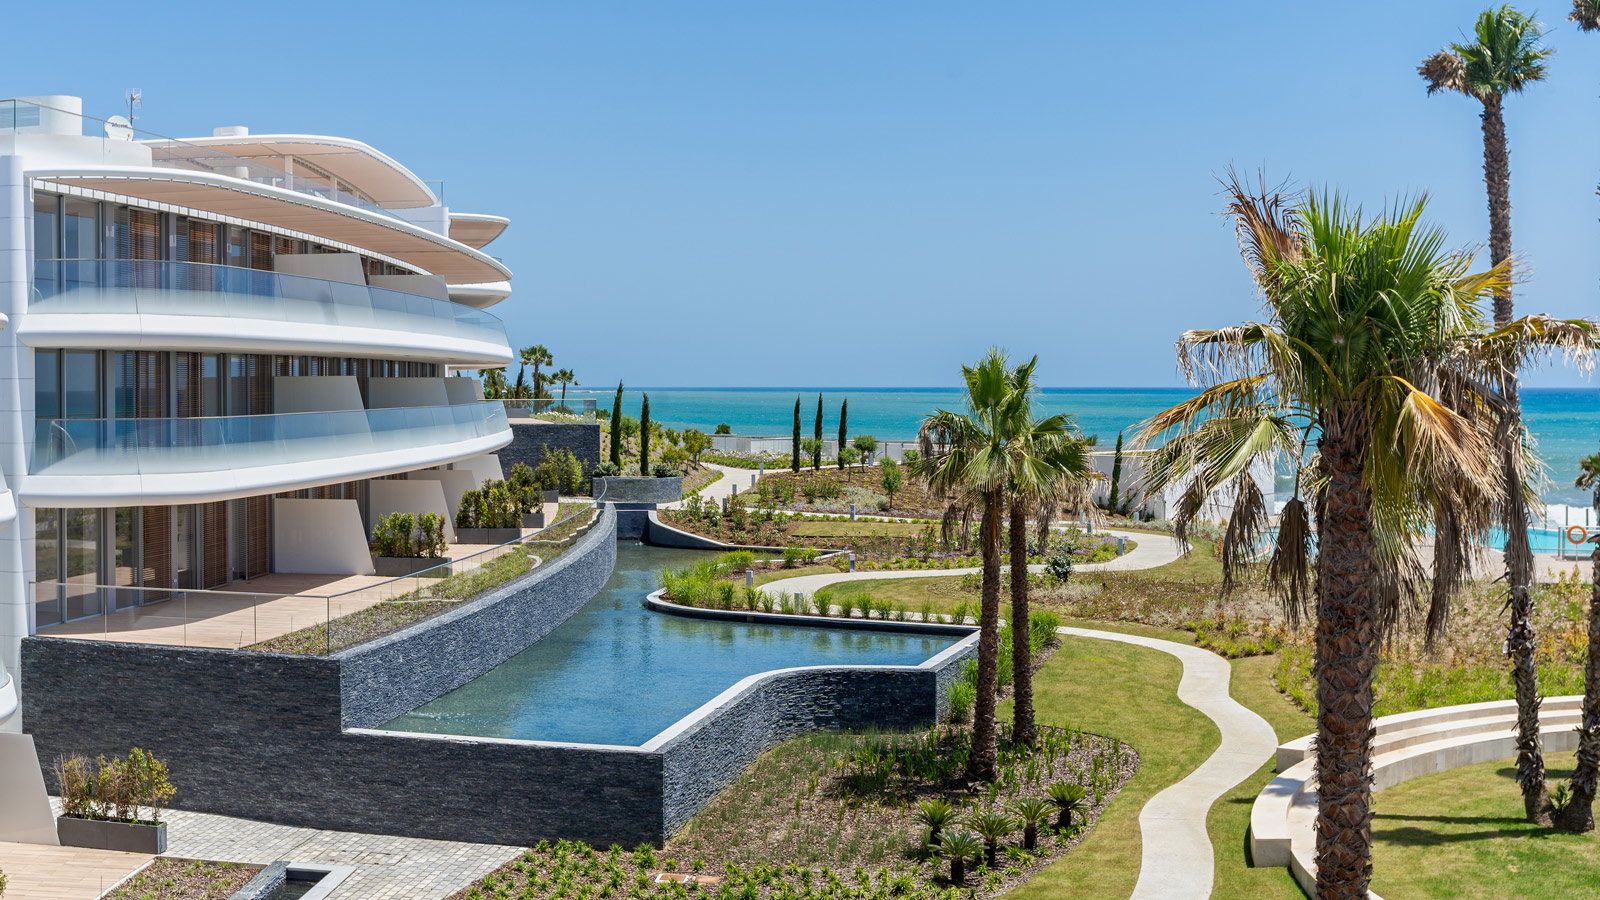 The Edge by Rafael de La-Hoz, a luxurious residential complex that blends seamlessly with the Mediterranean sea